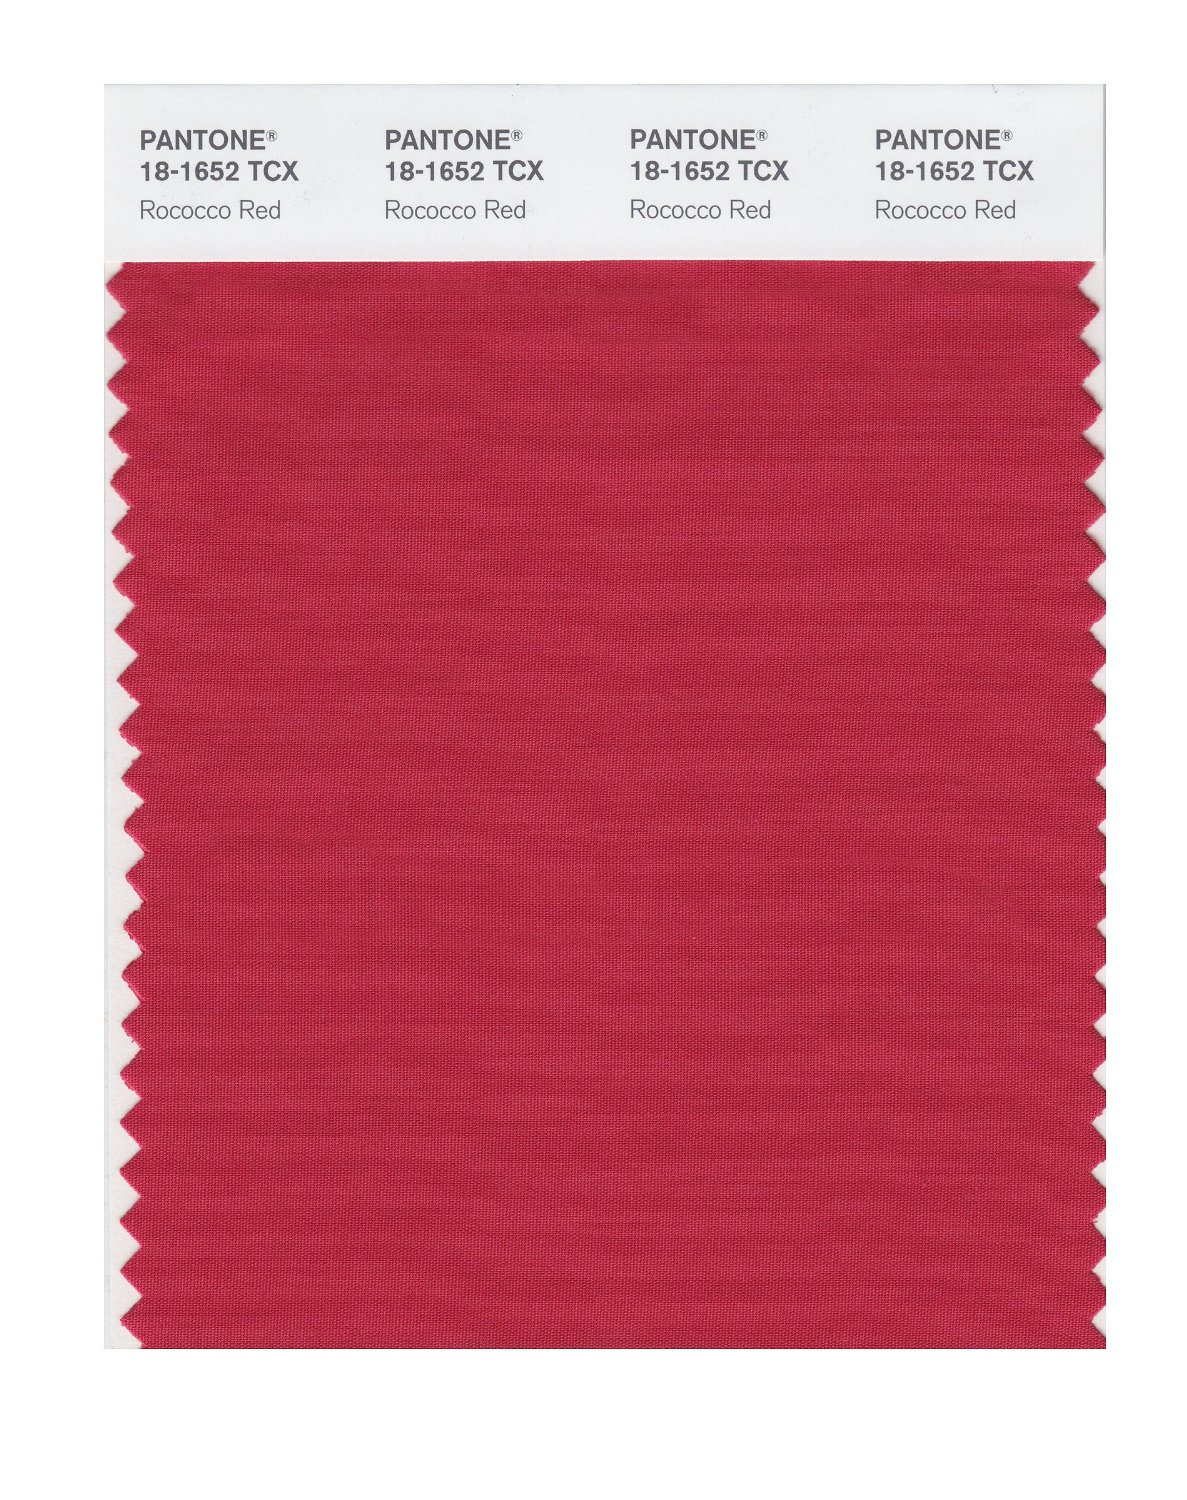 Pantone Smart Swatch 18-1652 Rococco Red